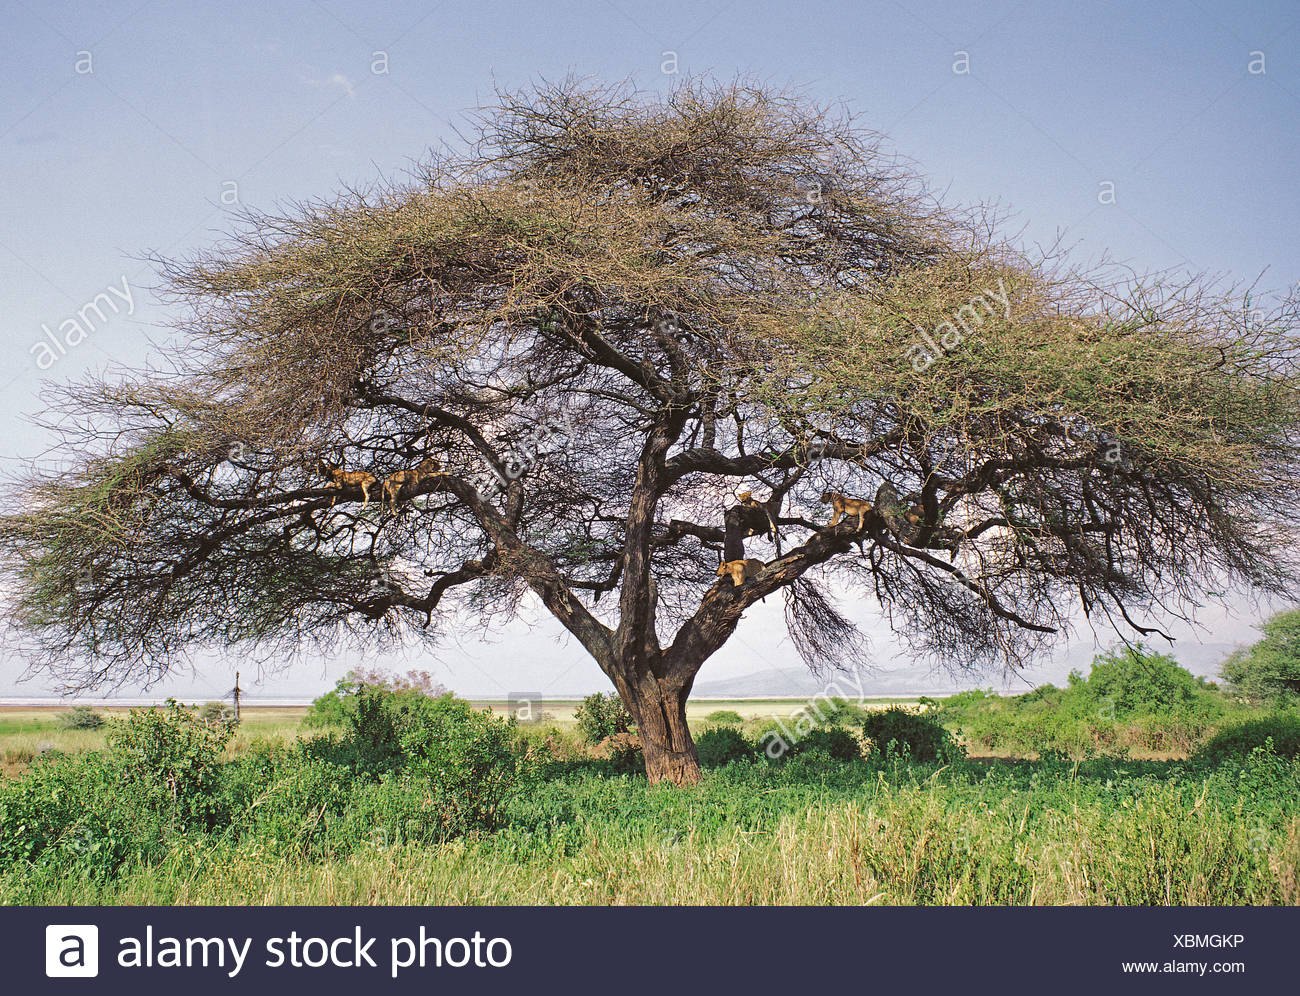 Six tree climbing lions resting on the braches of Acacia tortilis tree in Lake Manyara National Park Tanzania East Africa - Stock Image